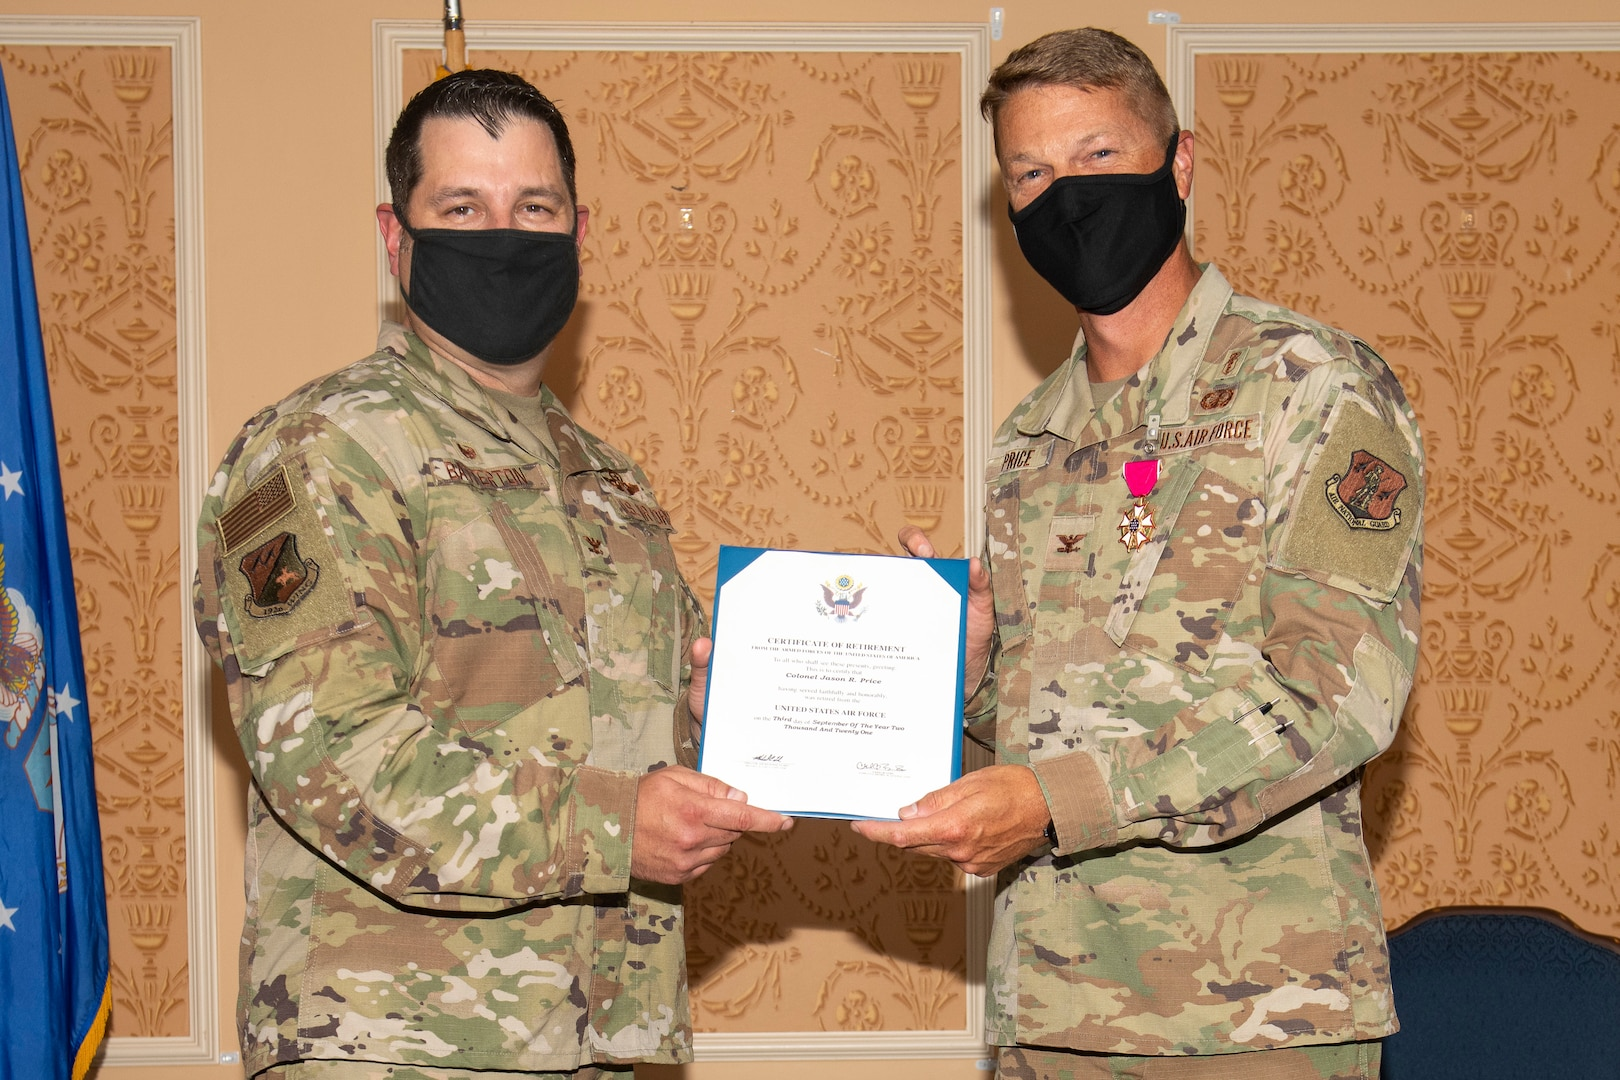 Col. Christopher G. Batterton, 192nd Wing commander, left, and Col. Jason R. Price, outgoing 192nd Medical Group commander, pose for a photo holding Price's certificate of retirement.